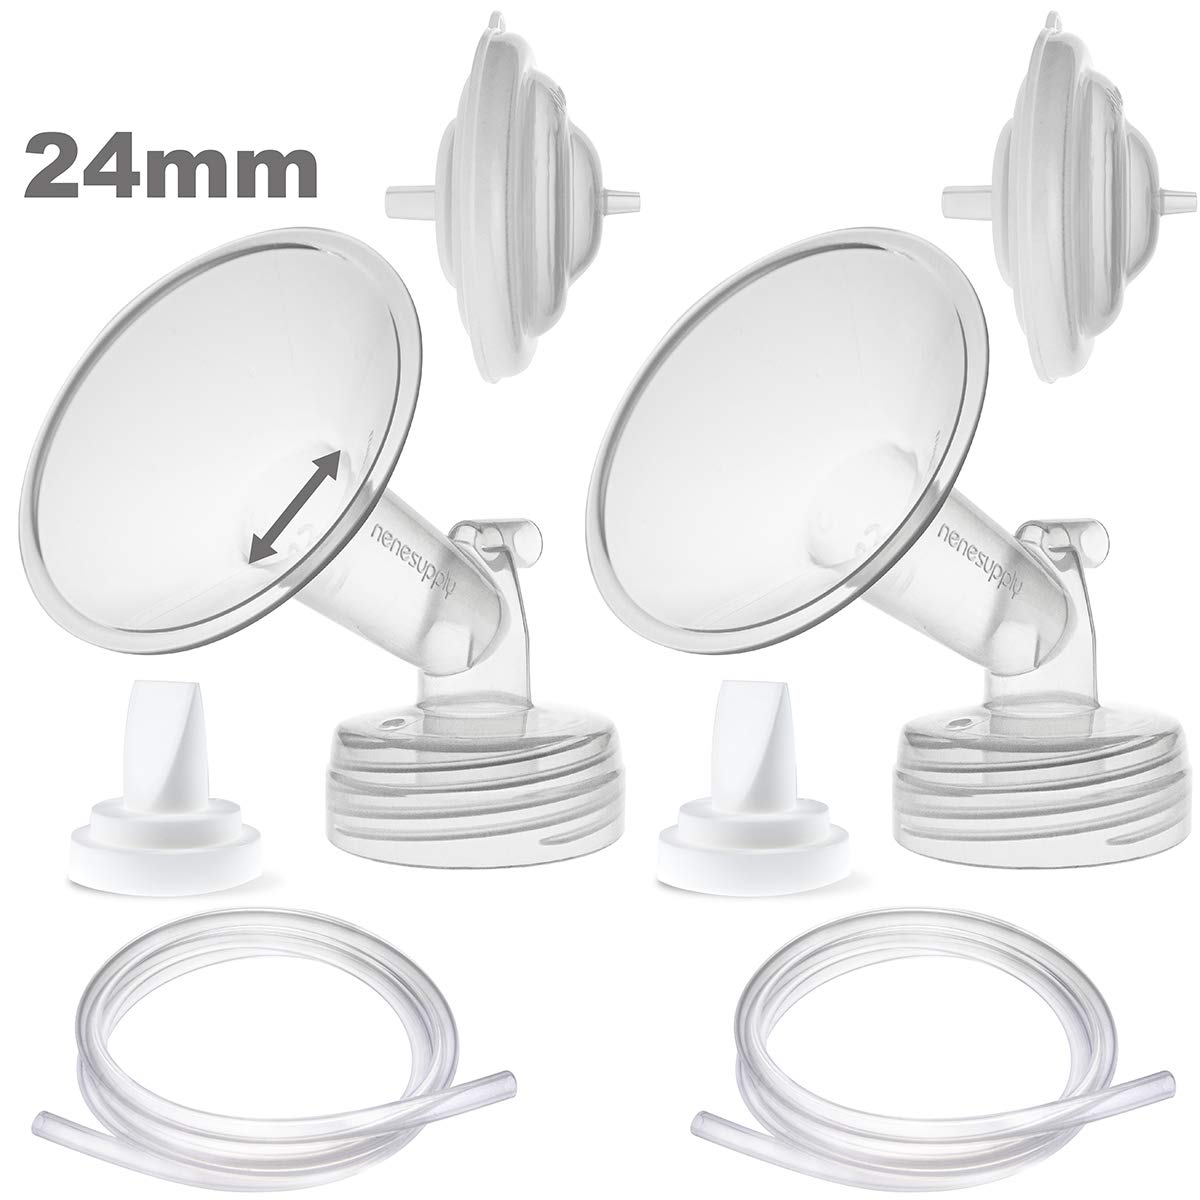 Nenesupply Compatible 21mm Flange and Duckbill Valves for Spectra S1 Spectra S2 Breastpump Not Original Spectra Duckbill Valve Not Original Spectra Pump Parts Replace Spectra S2 Accessories and Flange